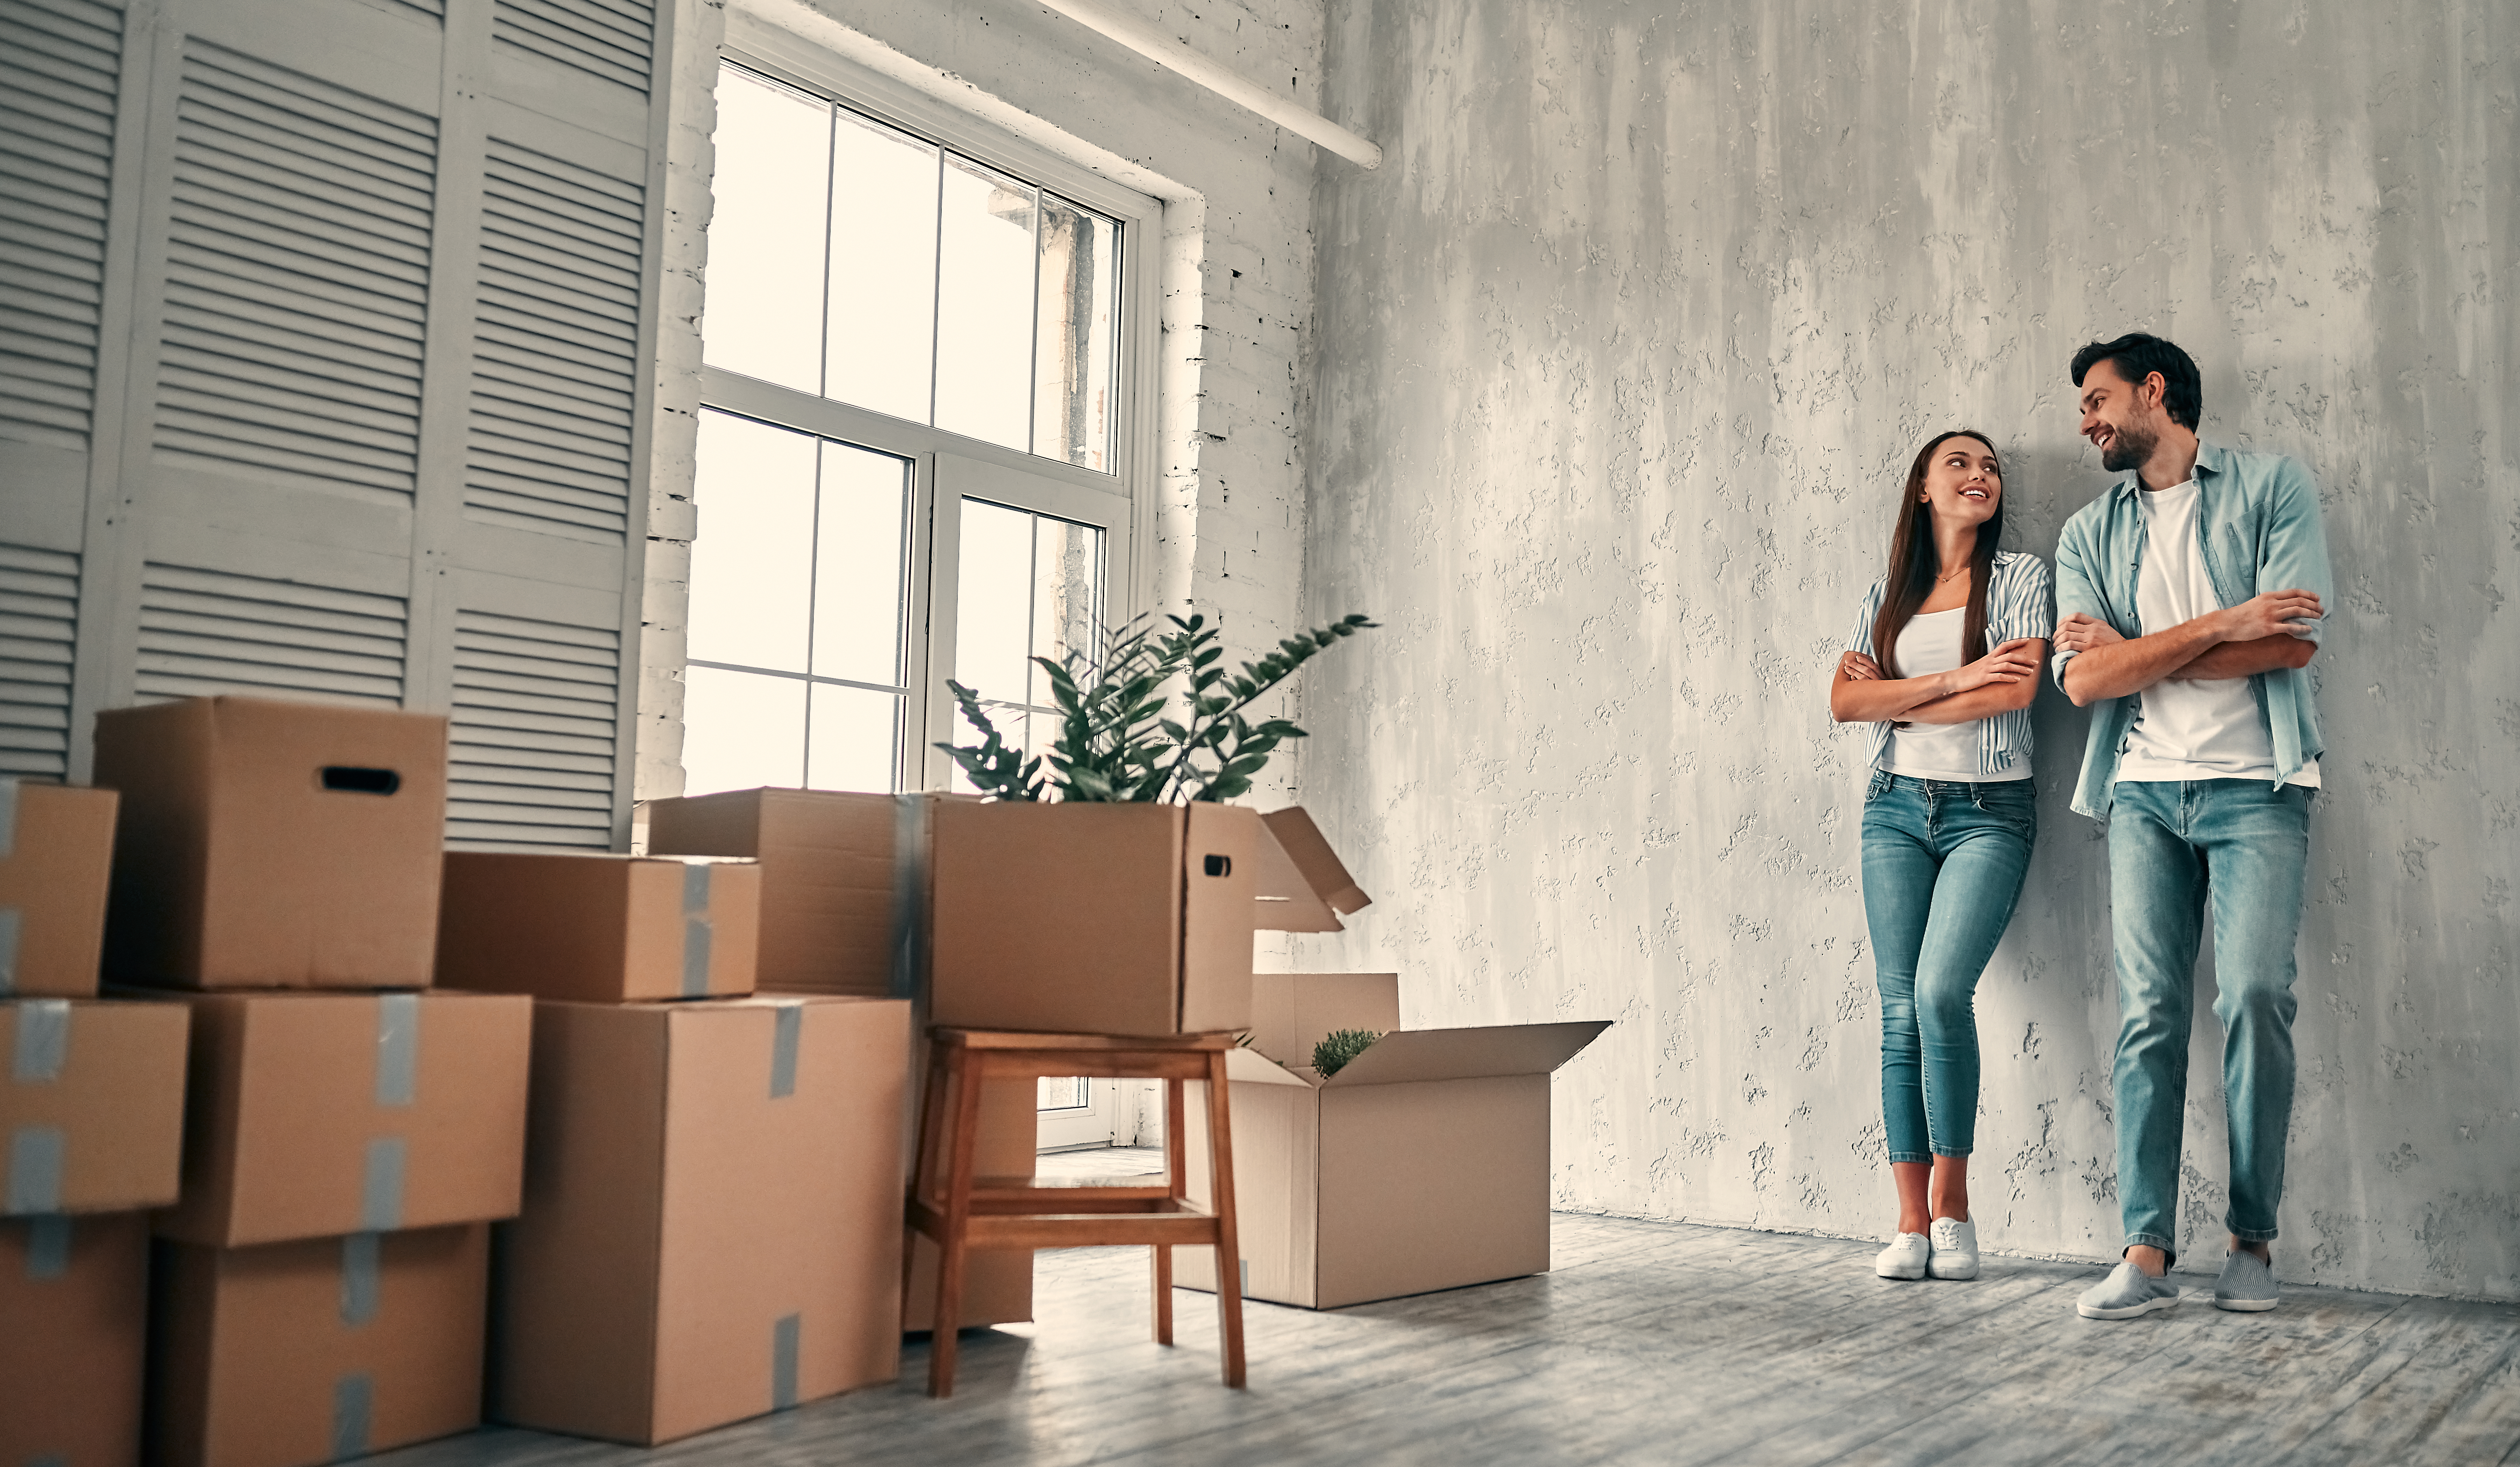 9 common moving questions during COVID-19 (and how to answer them)